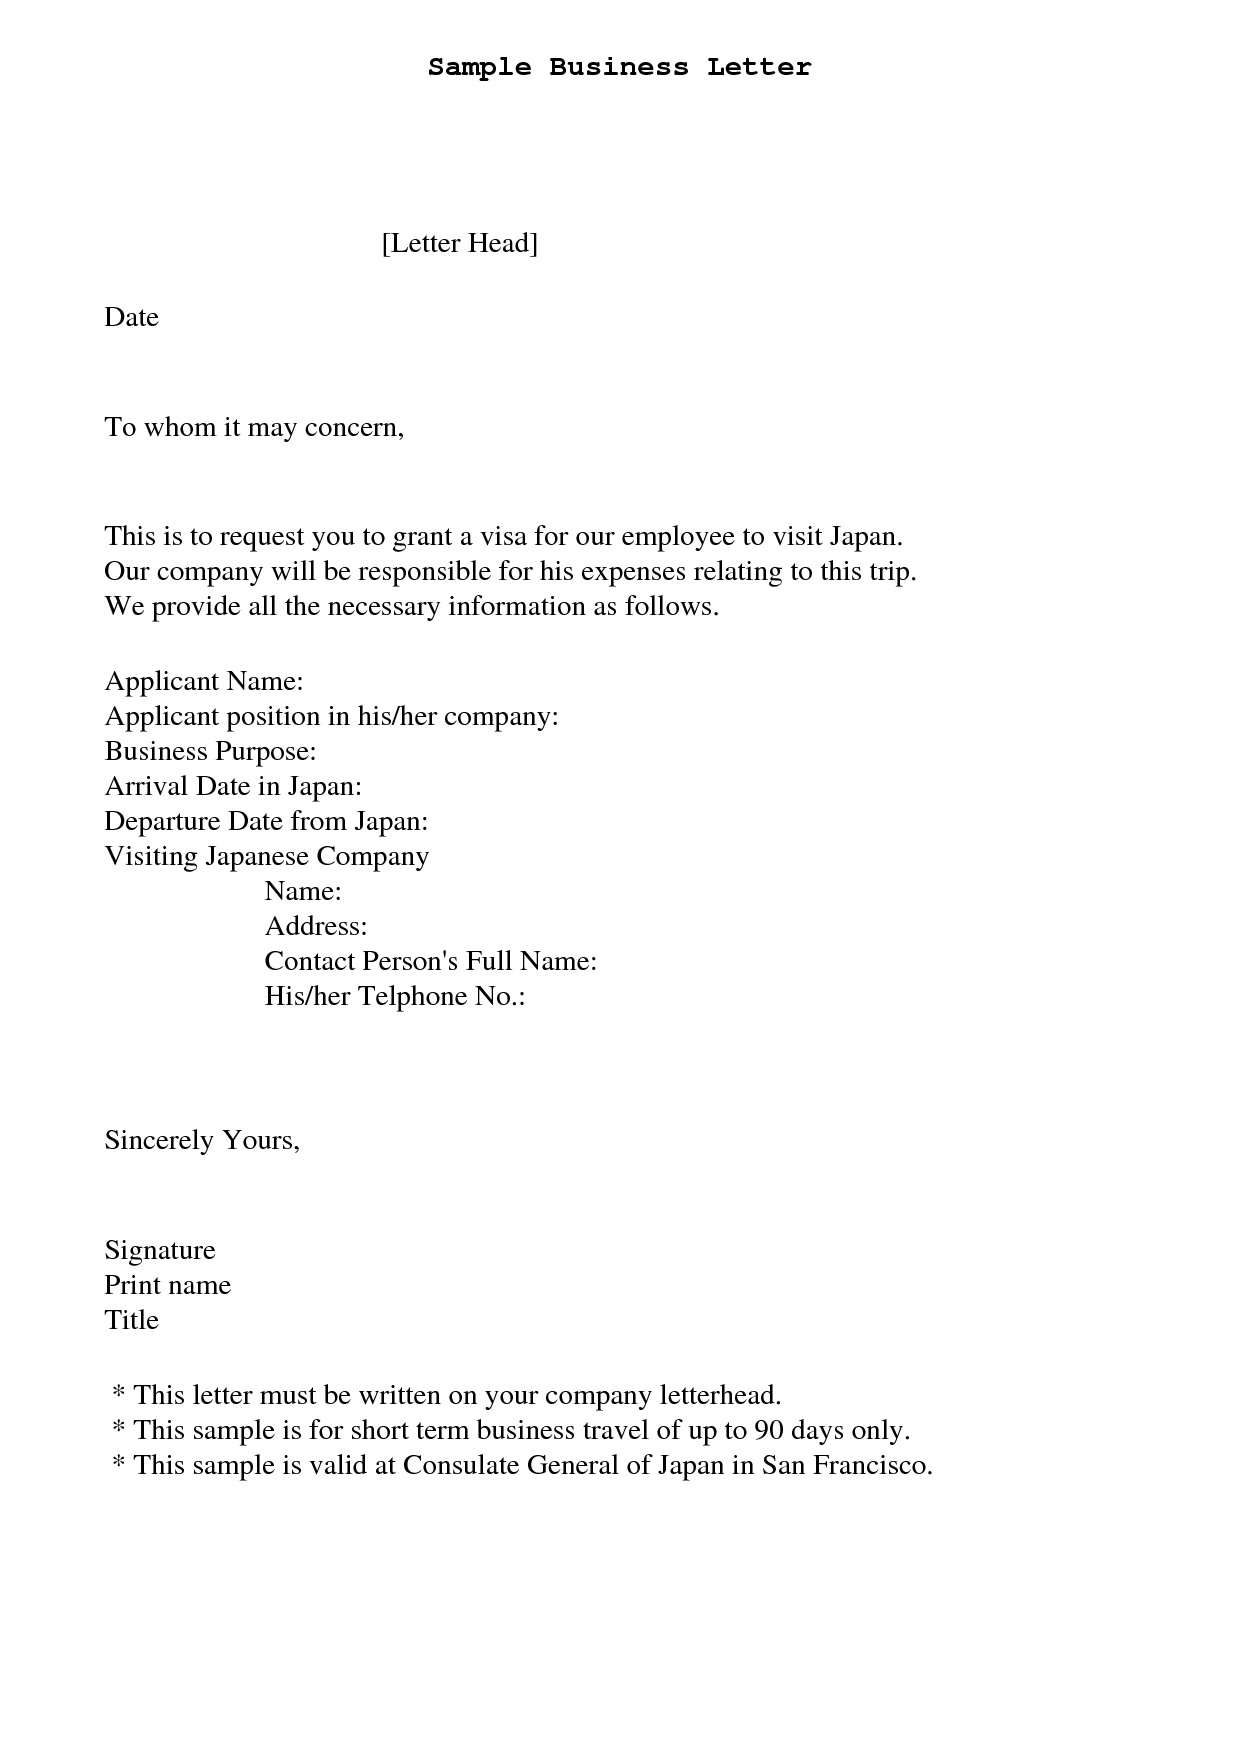 Professional letter format to whom it may concern formal letter professional letter format to whom it may concern formal letter format to whom it may concern spiritdancerdesigns Choice Image